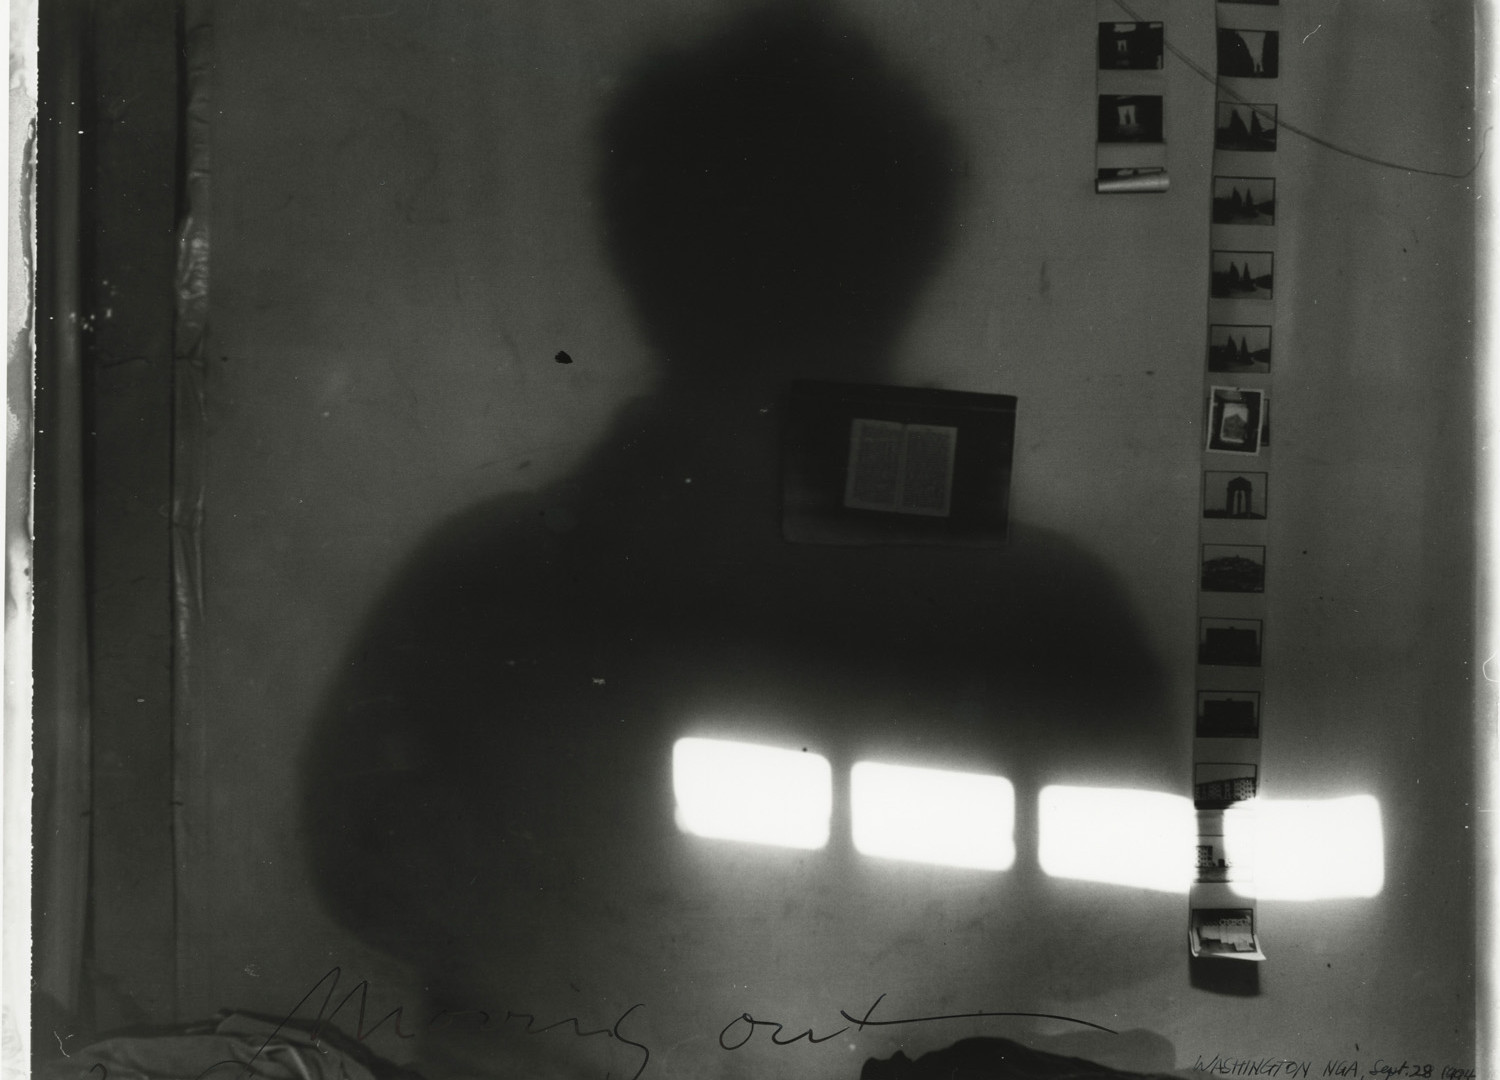 Robert Frank, Moving Out, 1993